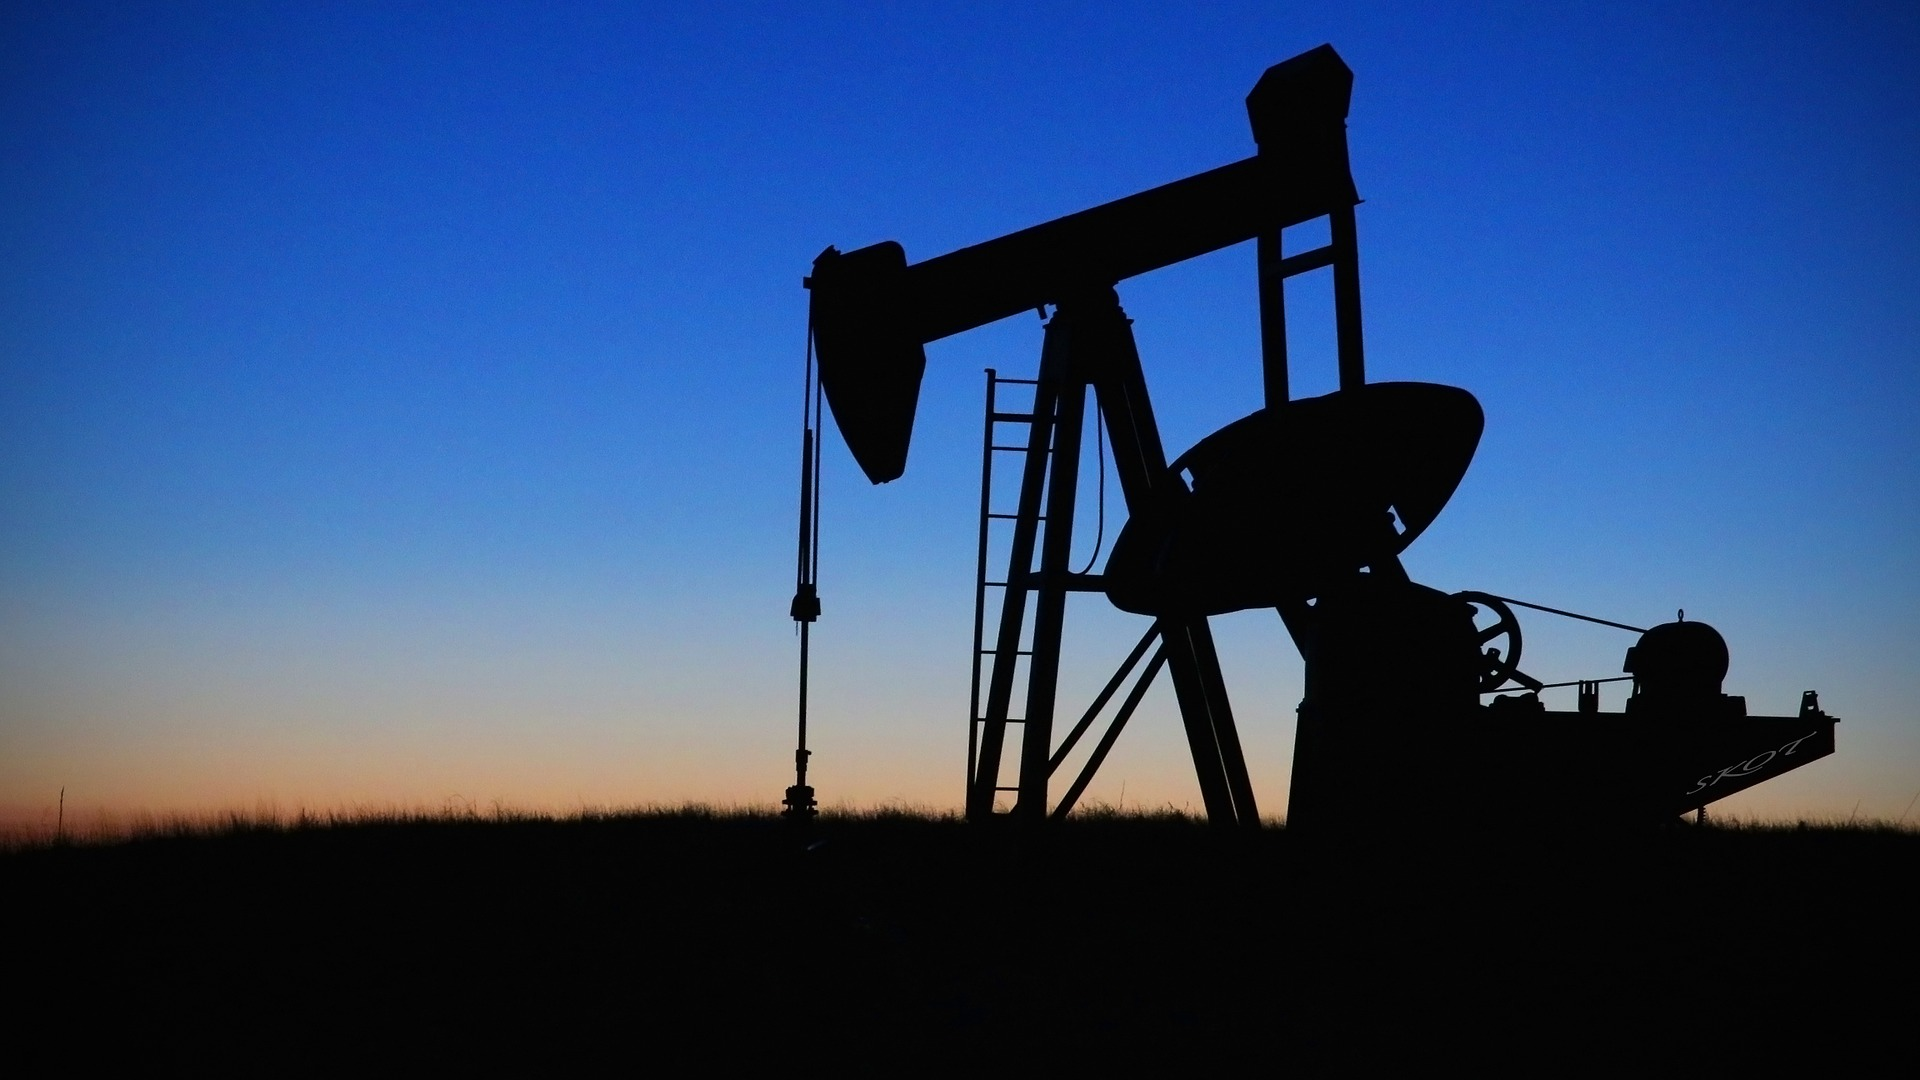 frequently asked questions about oilfield accidents